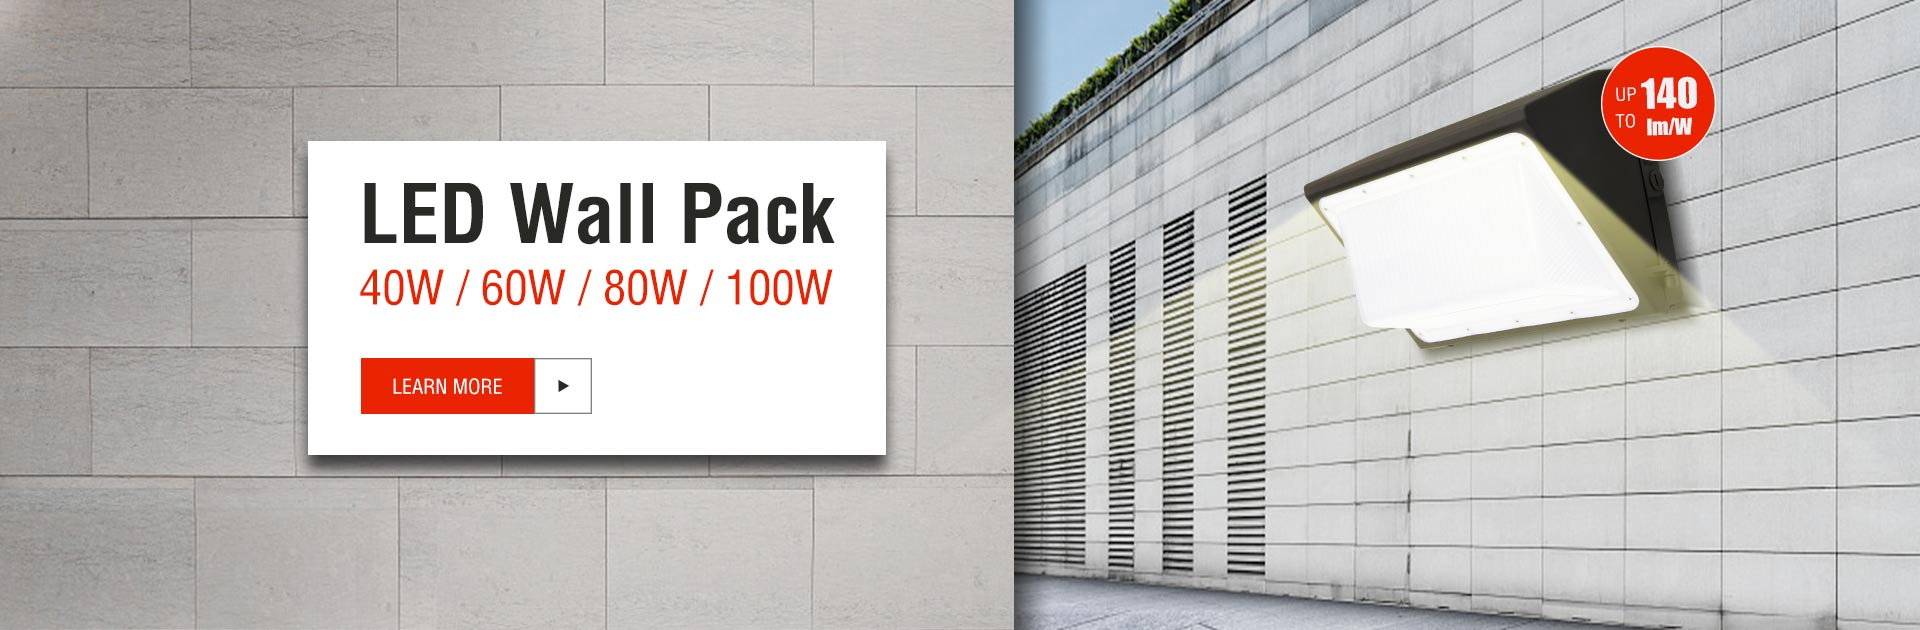 Green Inova Launches New LED Wall Pack